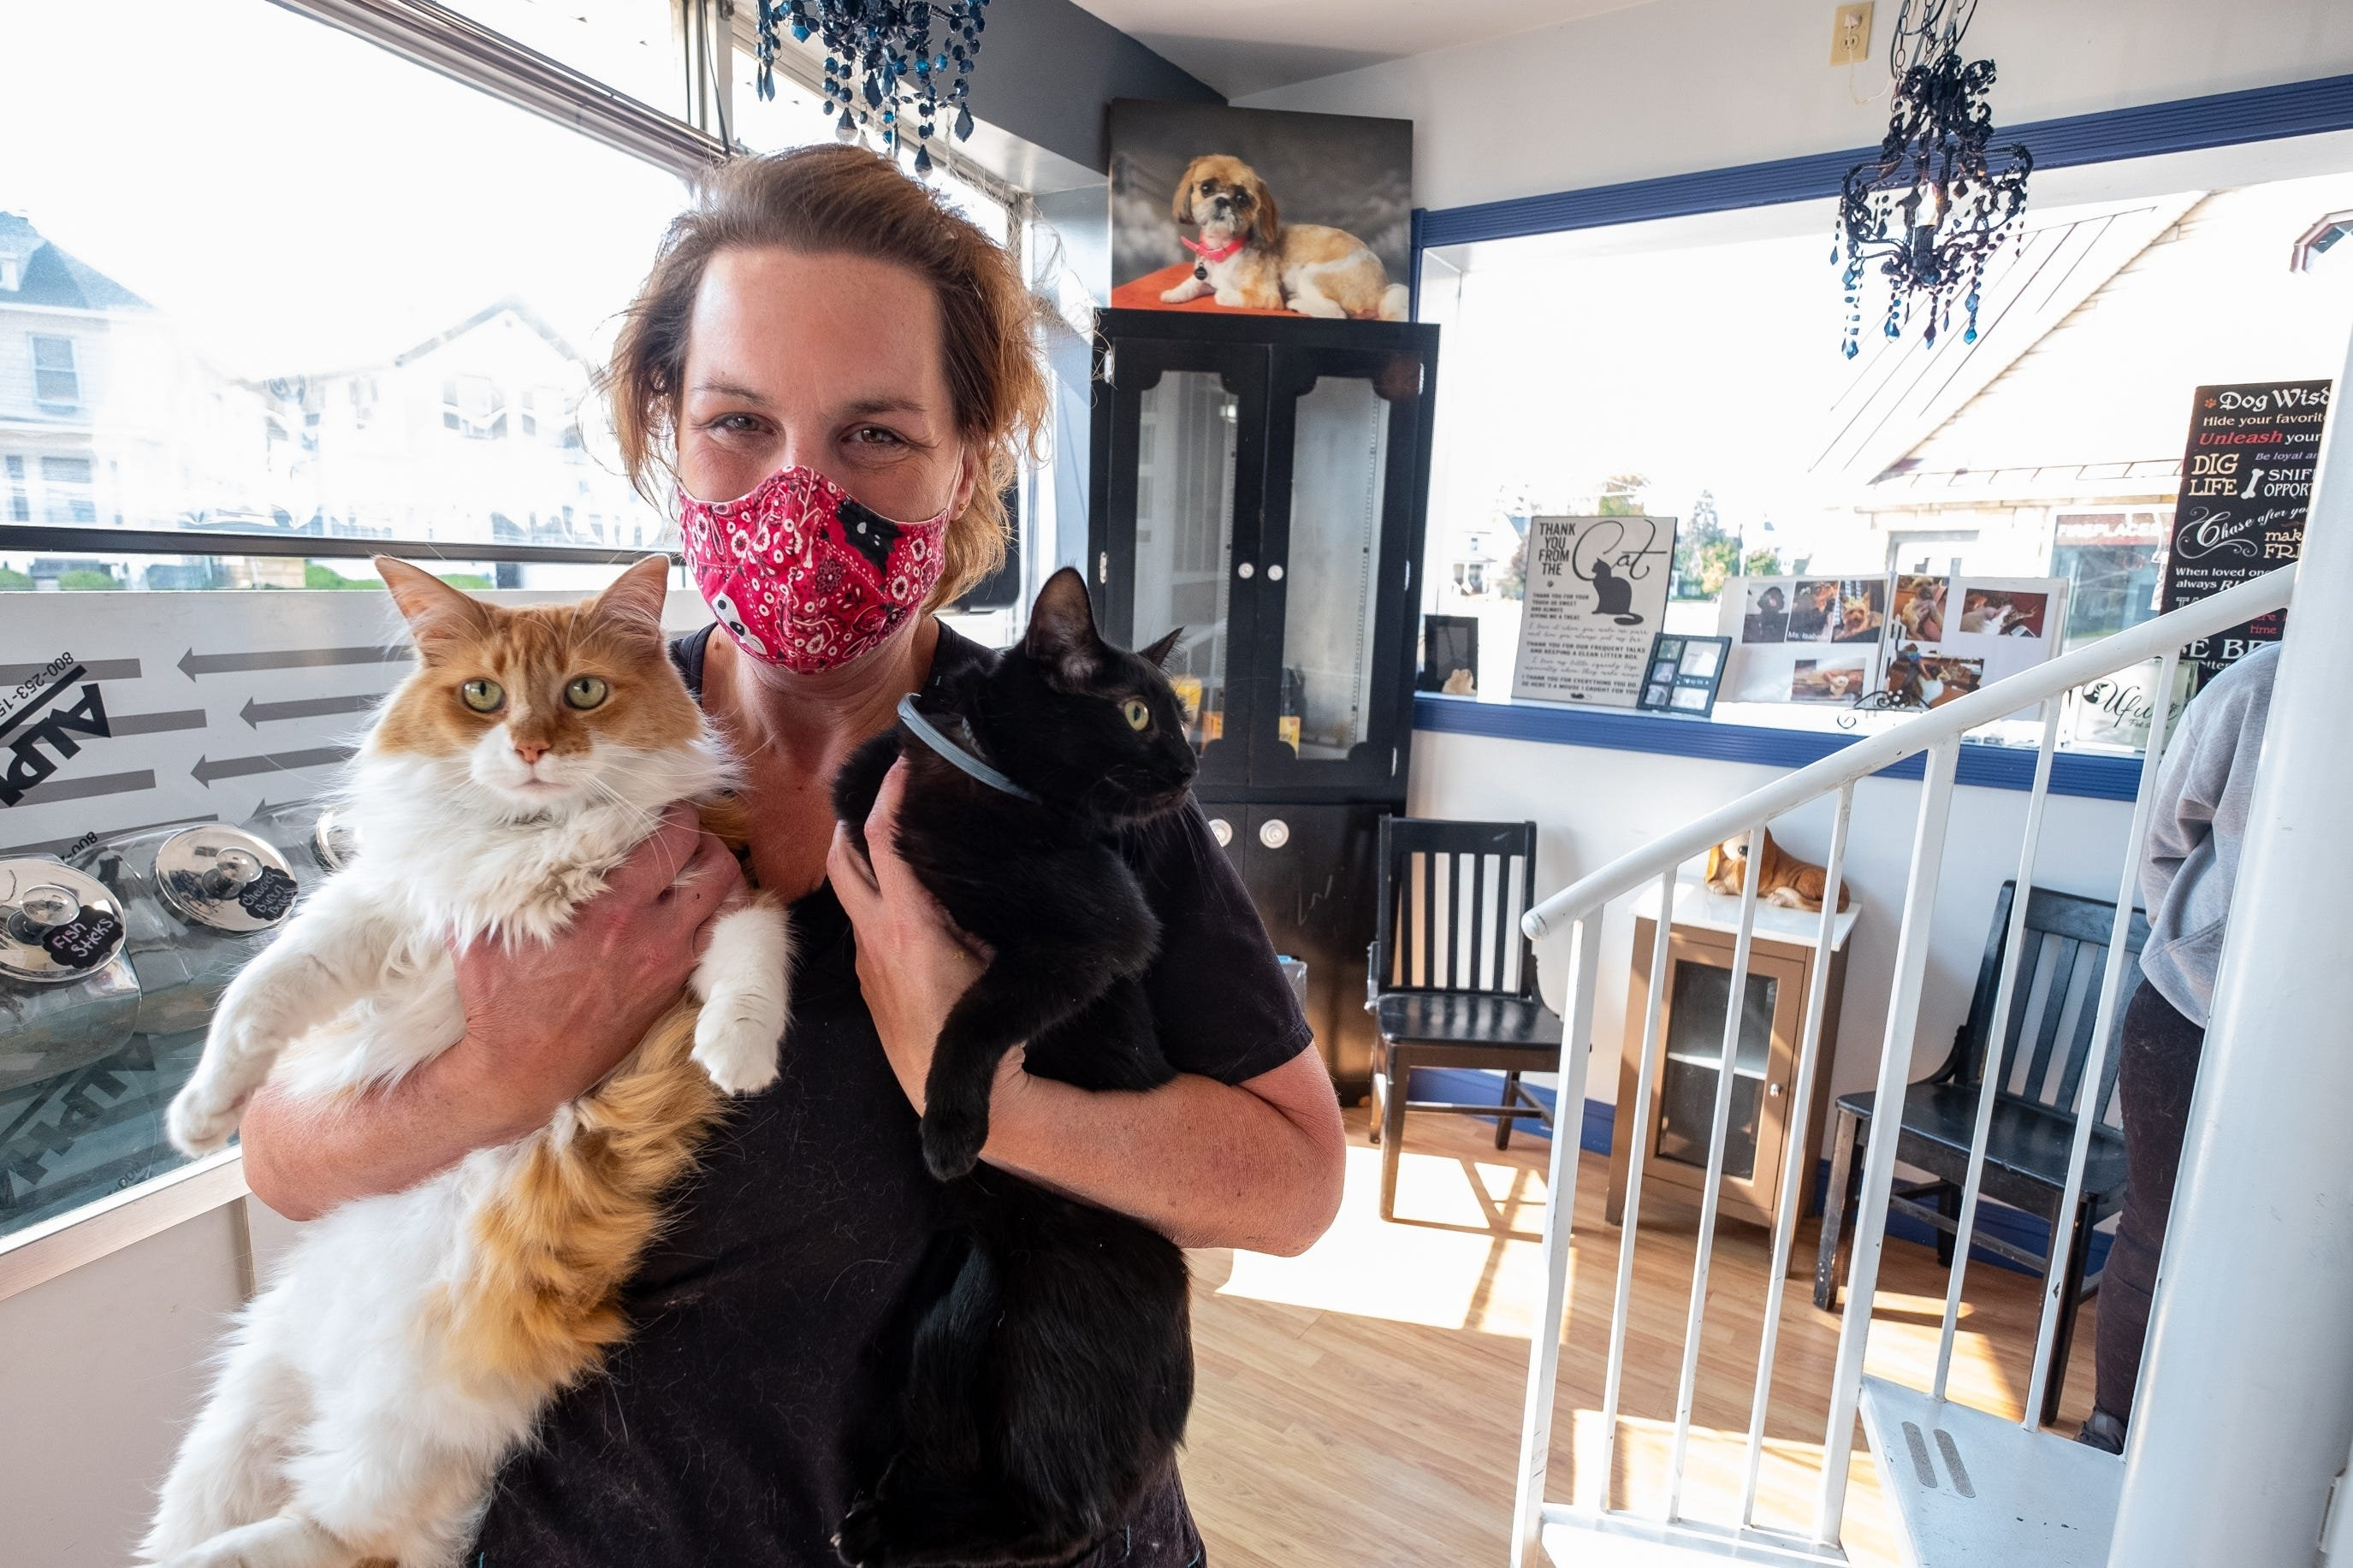 Spring Burrell, owner of Ufuri Pet Salon, poses for a portrait with Banjo and Eleanor, two cats that live at the business, Tuesday, Sept. 22, 2020, at her new location. (REUTERS Photo)